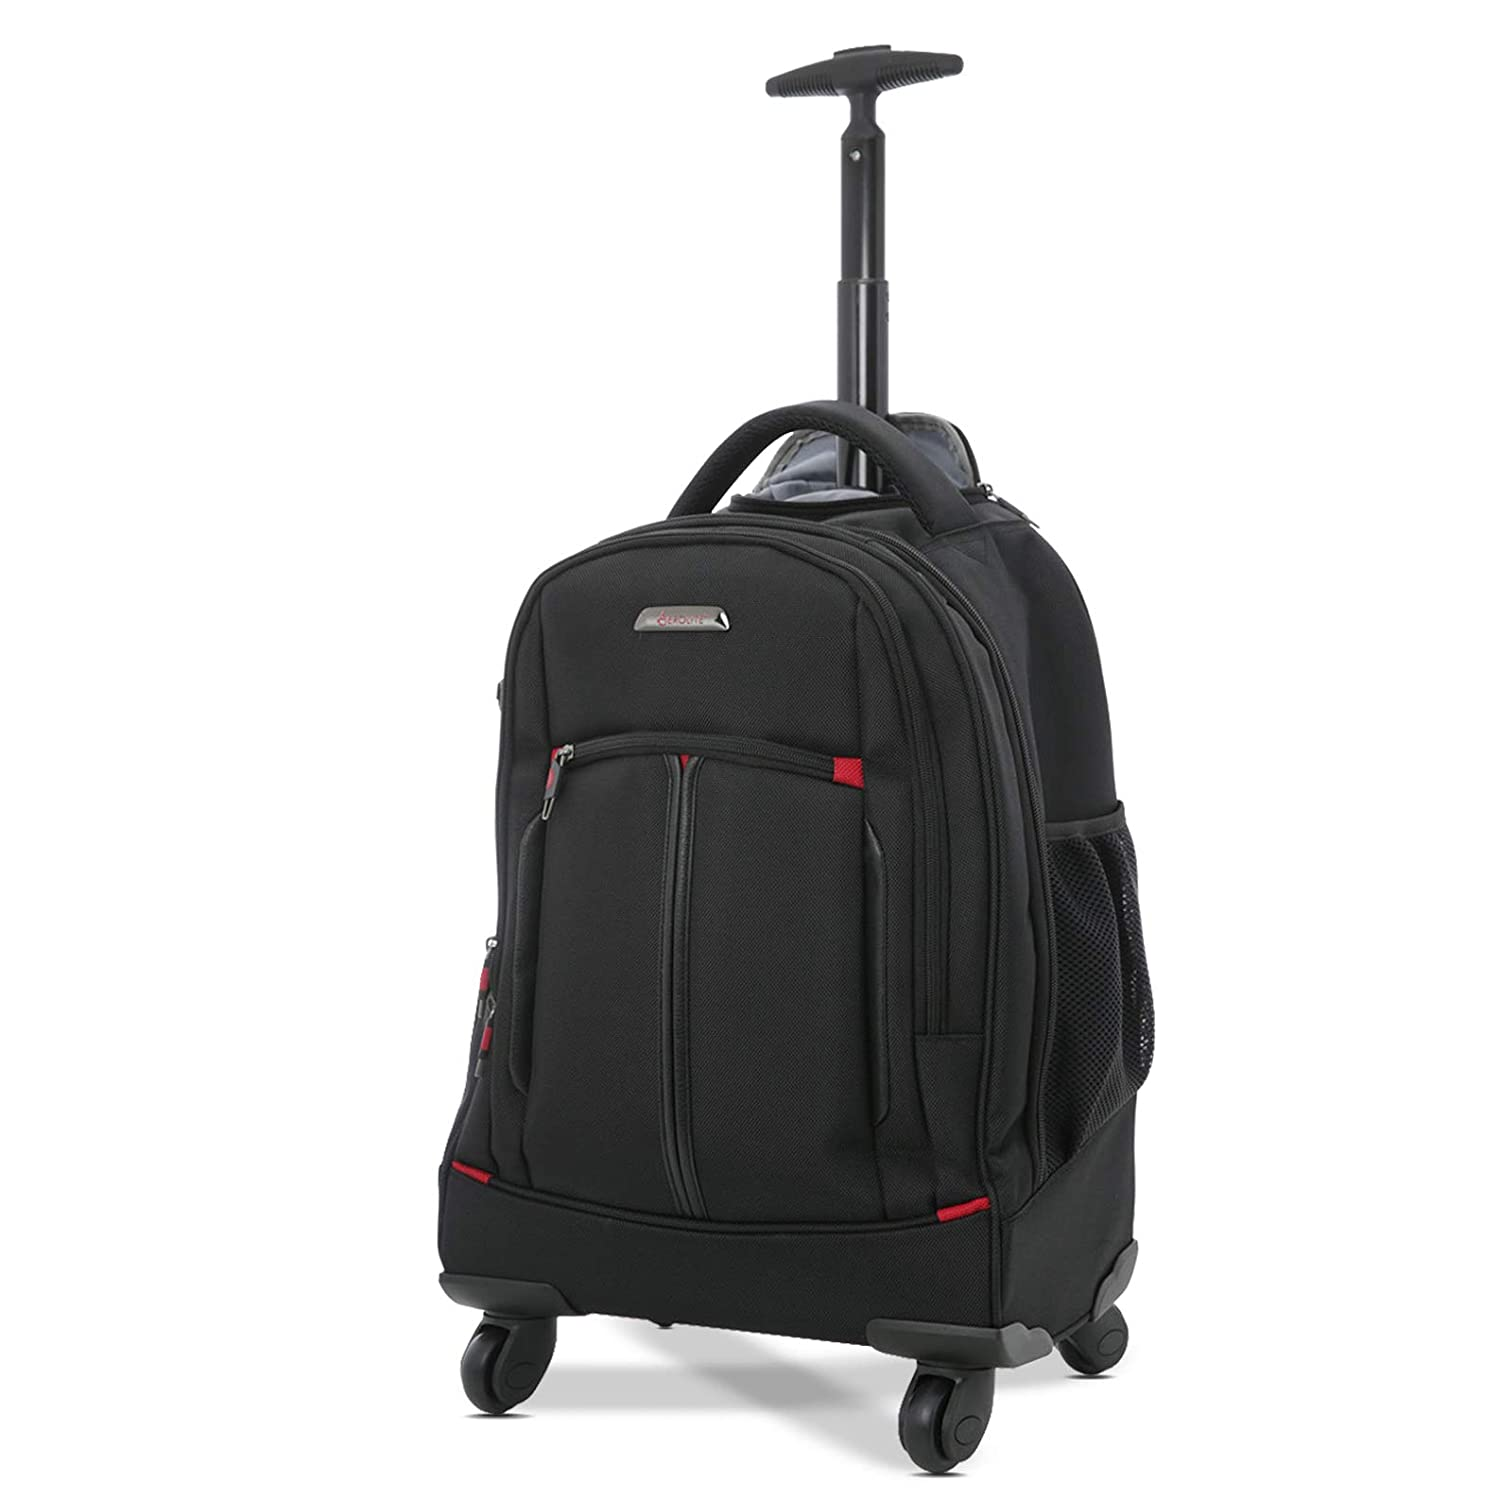 "1cc6e5ab851 Aerolite 21""/55cm 4 Wheel Trolley Backpack Executive Mobile Office Business  Hand Cabin Luggage Laptop Rucksack Shoulder Bag – Approved for Easyjet, ..."